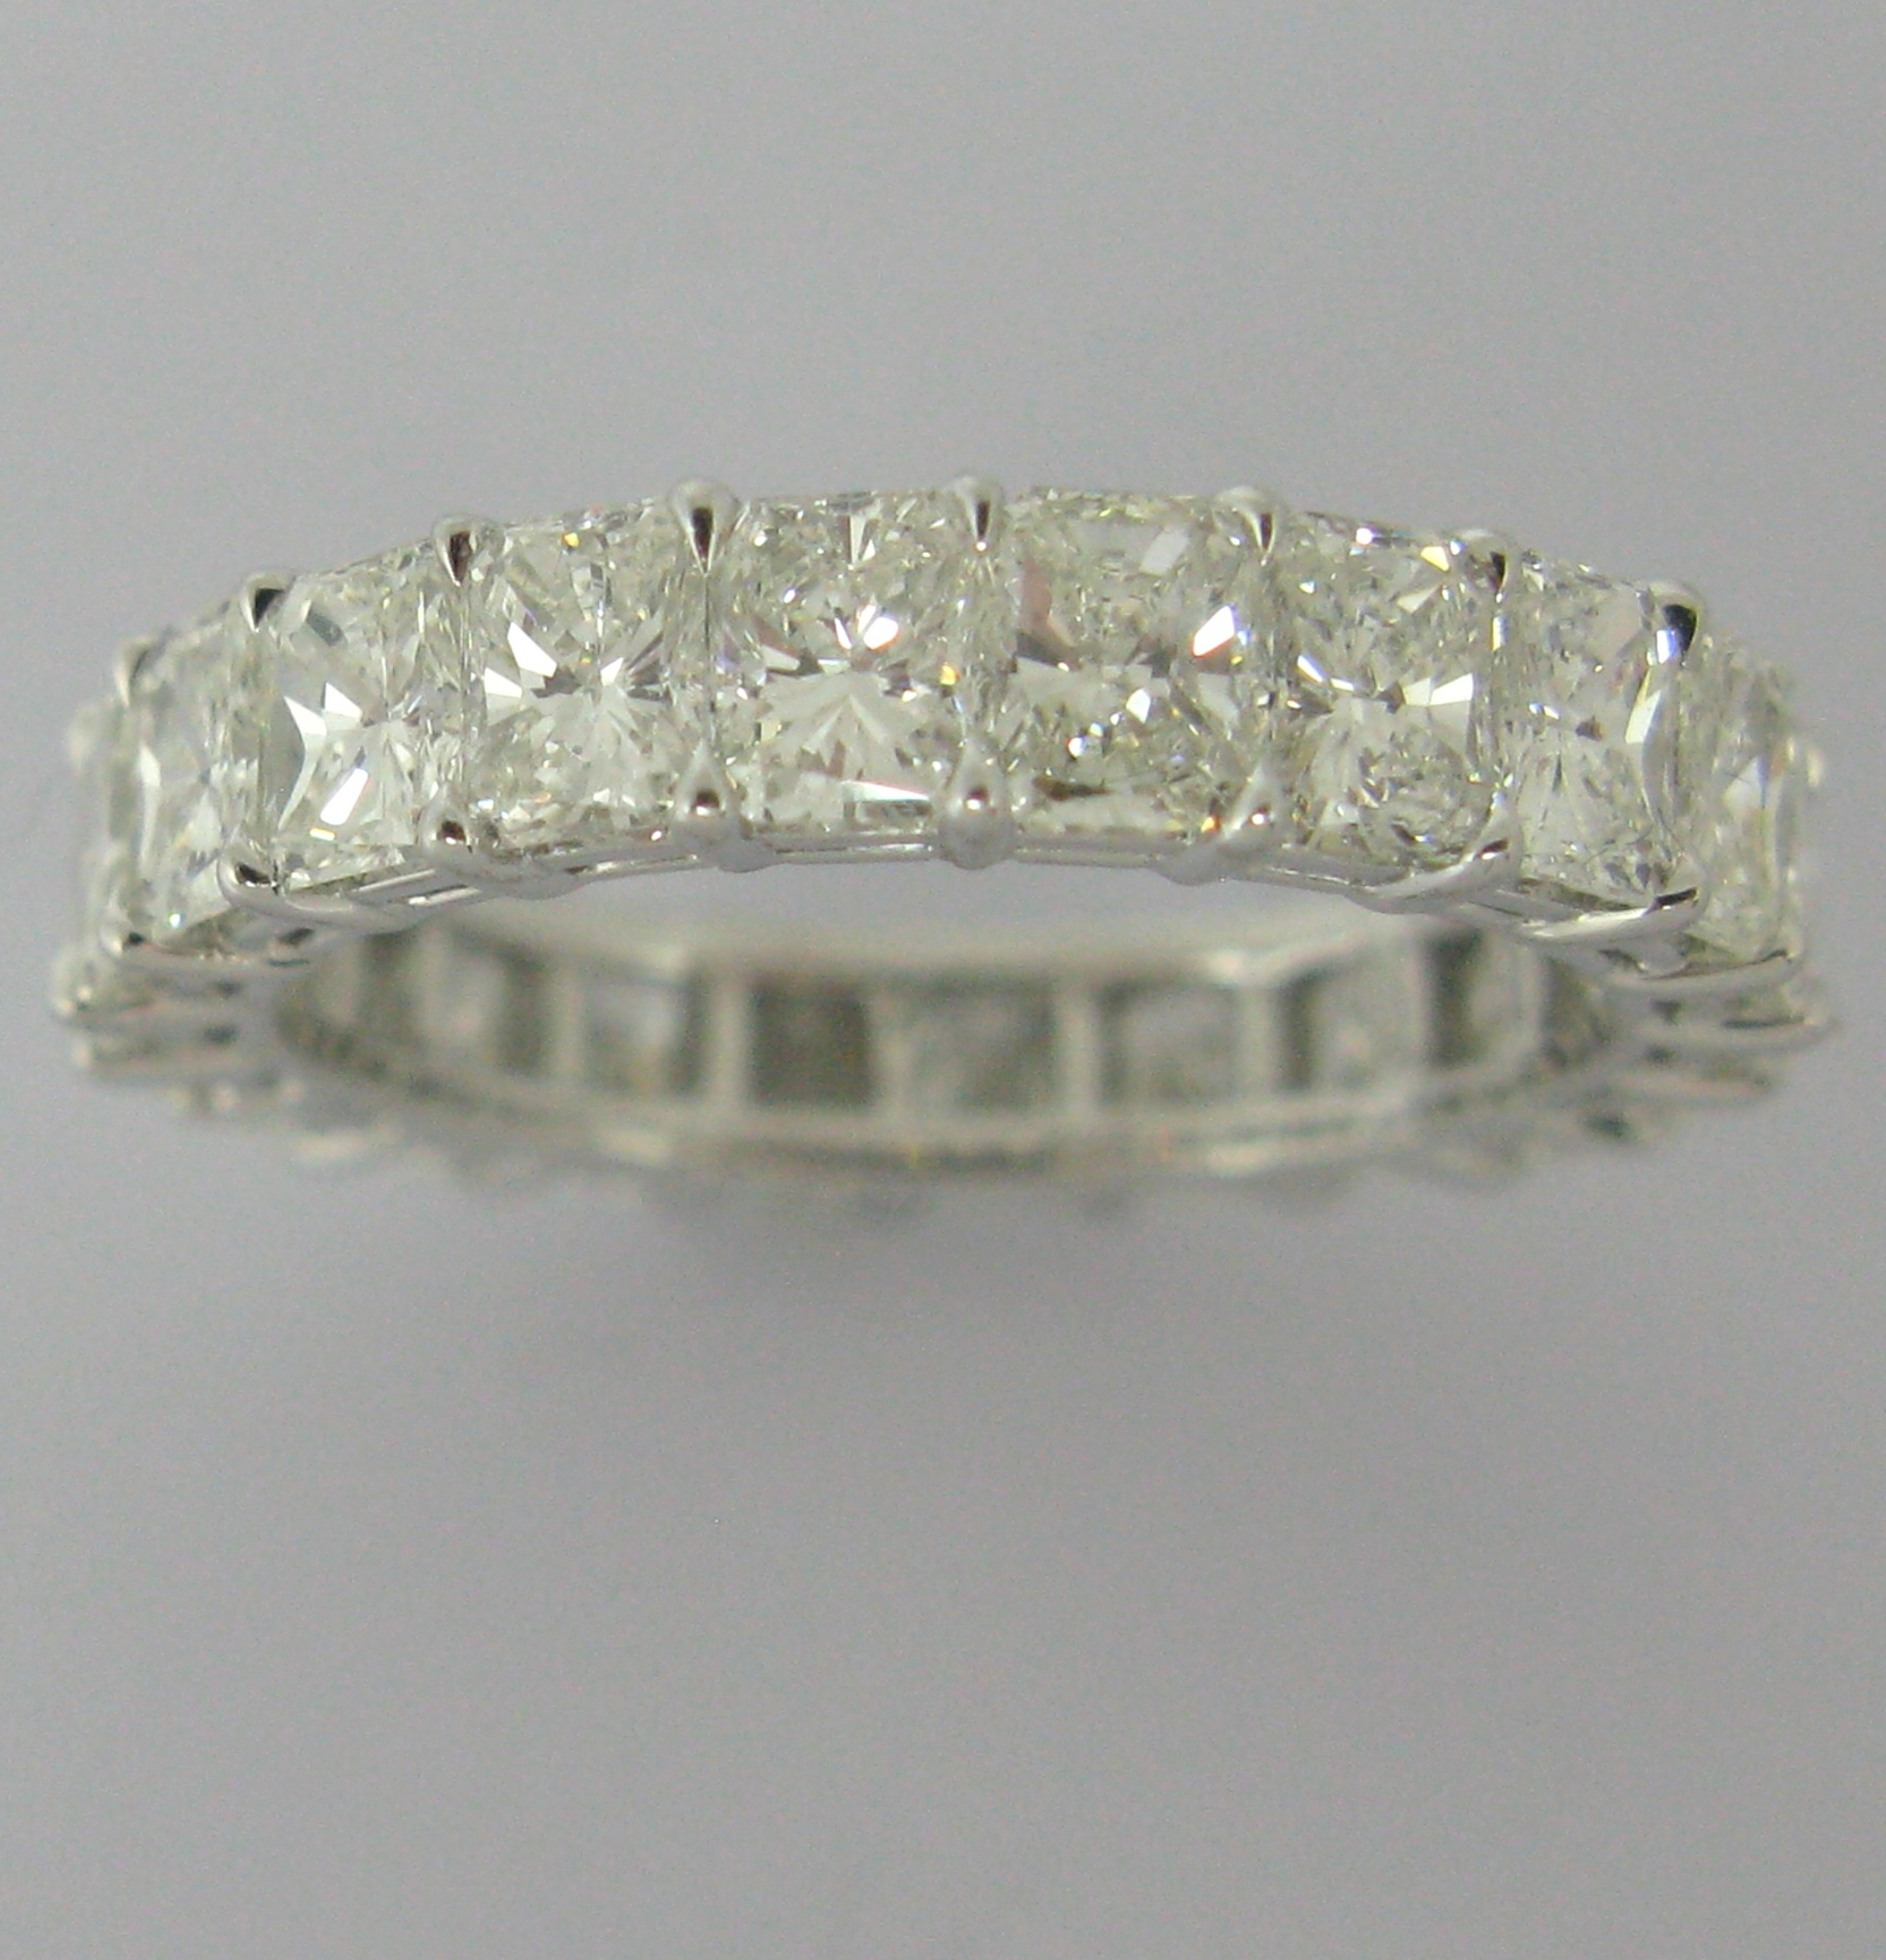 radiant wedding with a band engagement supernova em branch products twig moissanite seed and stackable rings bands forever ring or cut moiss feath one mod rosemary